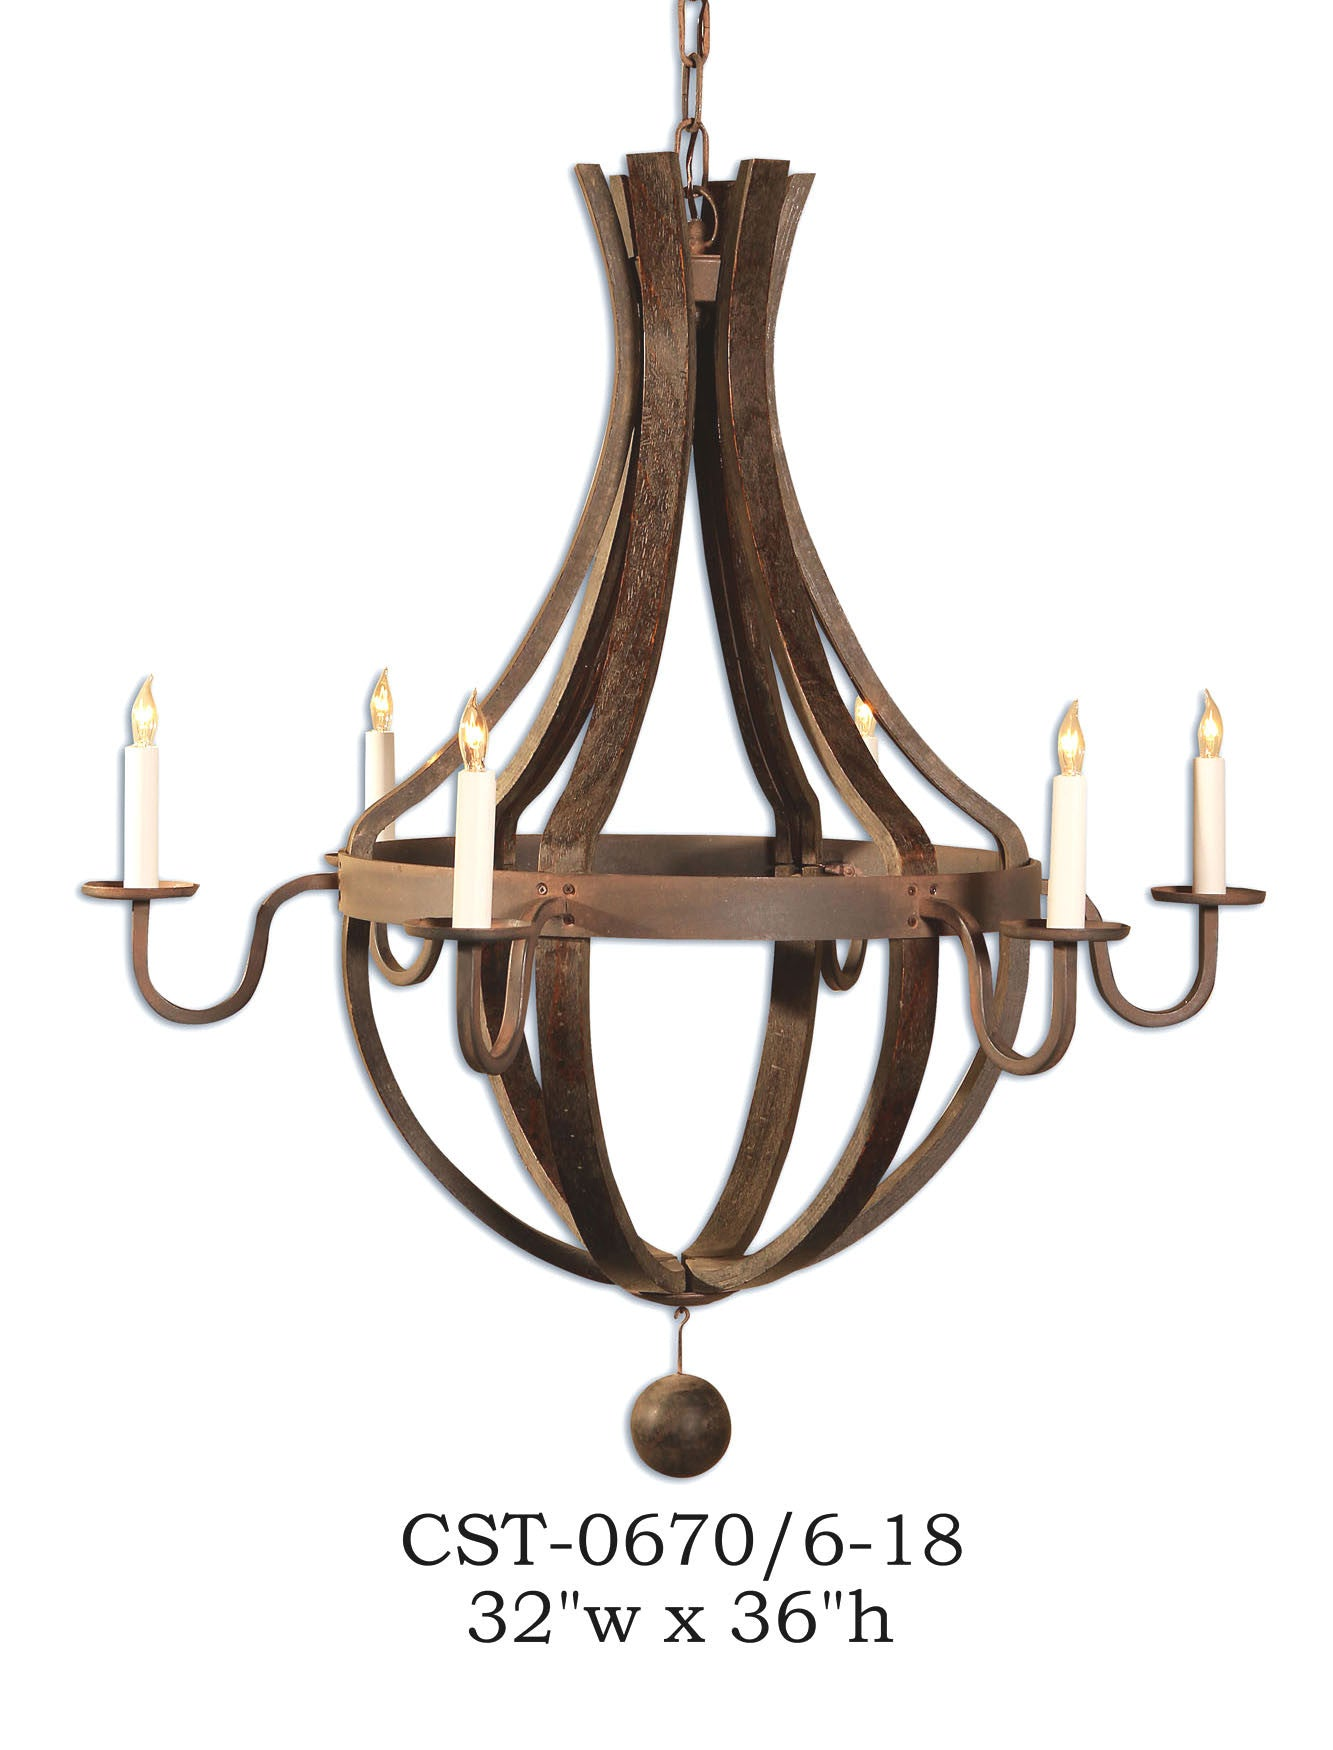 Wood Chandelier - CST-0670/6-18Chandelier - Graham's Lighting Memphis, TN